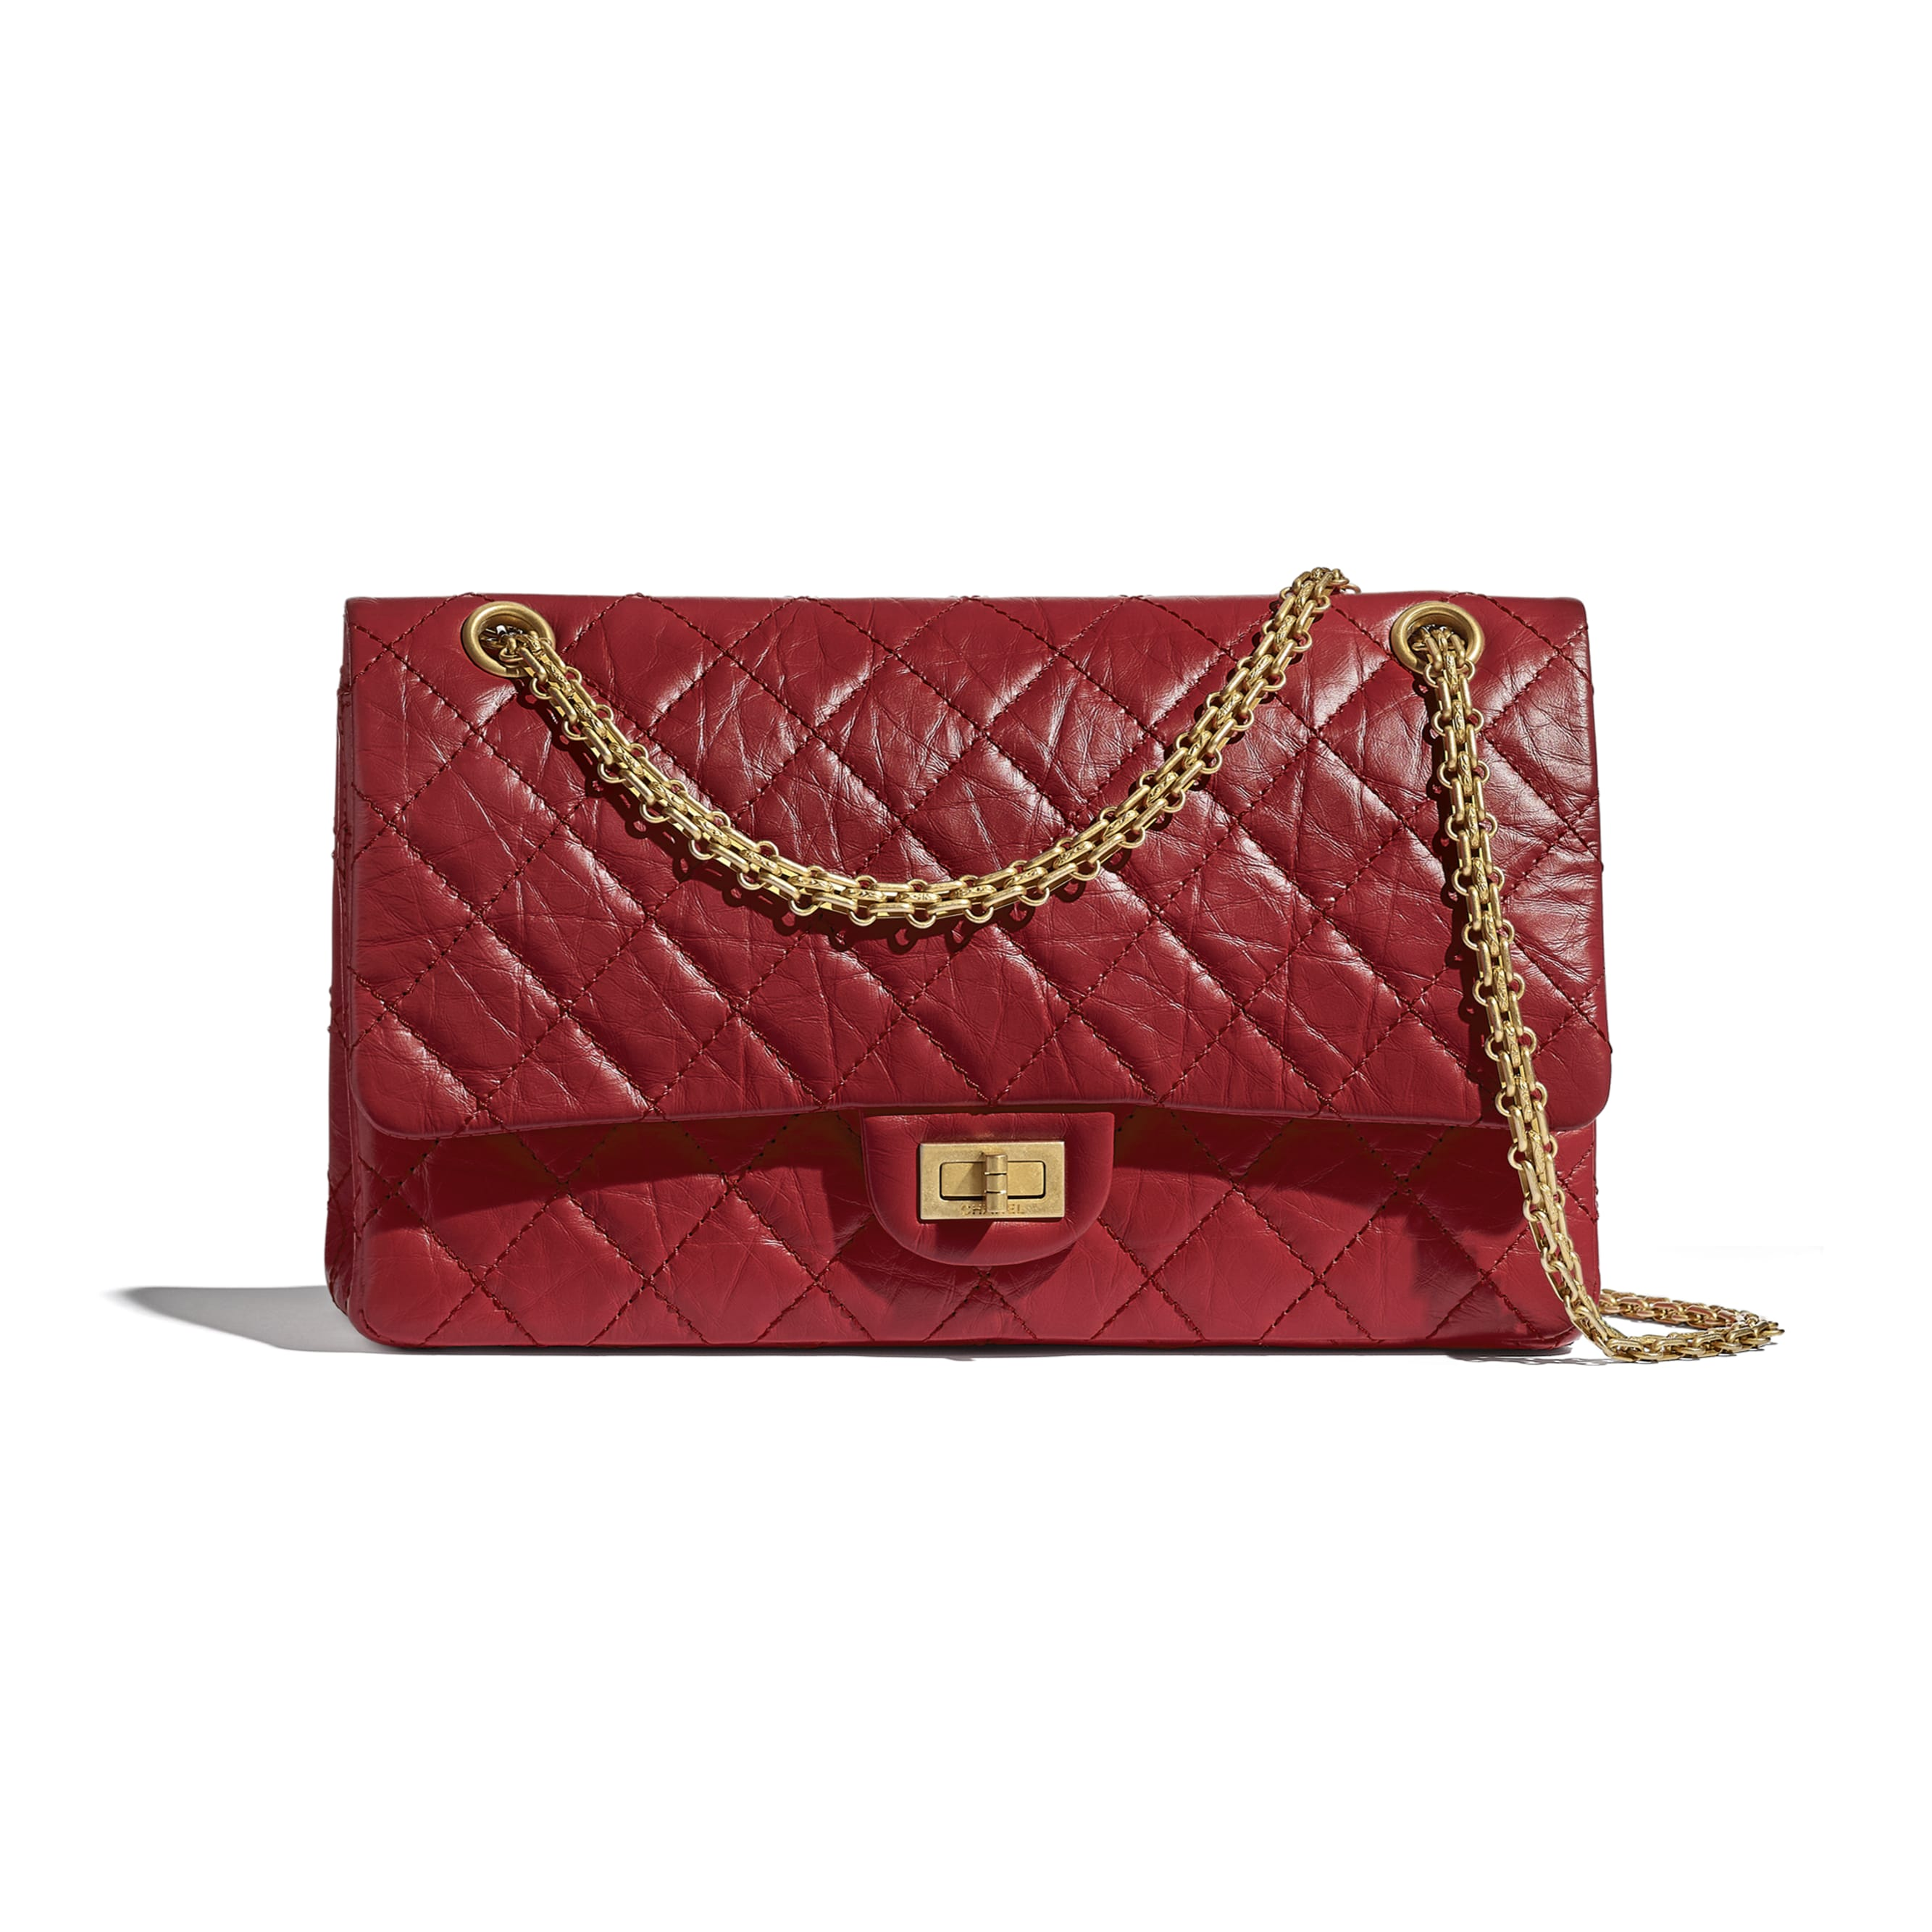 Large 2.55 Handbag - Red - Aged Calfskin & Gold-Tone Metal - CHANEL - Default view - see standard sized version